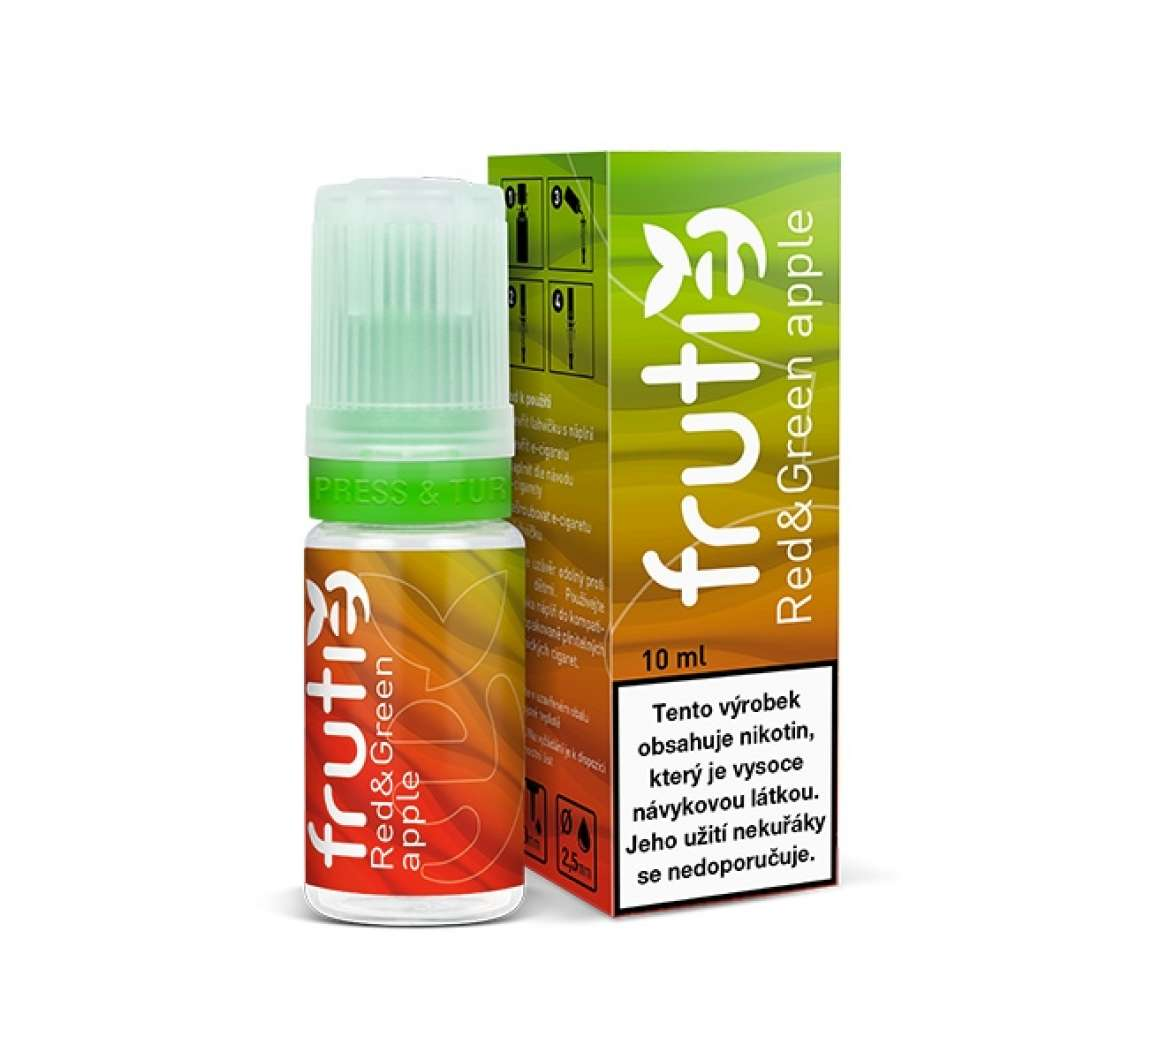 Frutie - Jablko (Red and Green Apple) - 10ml 0mg